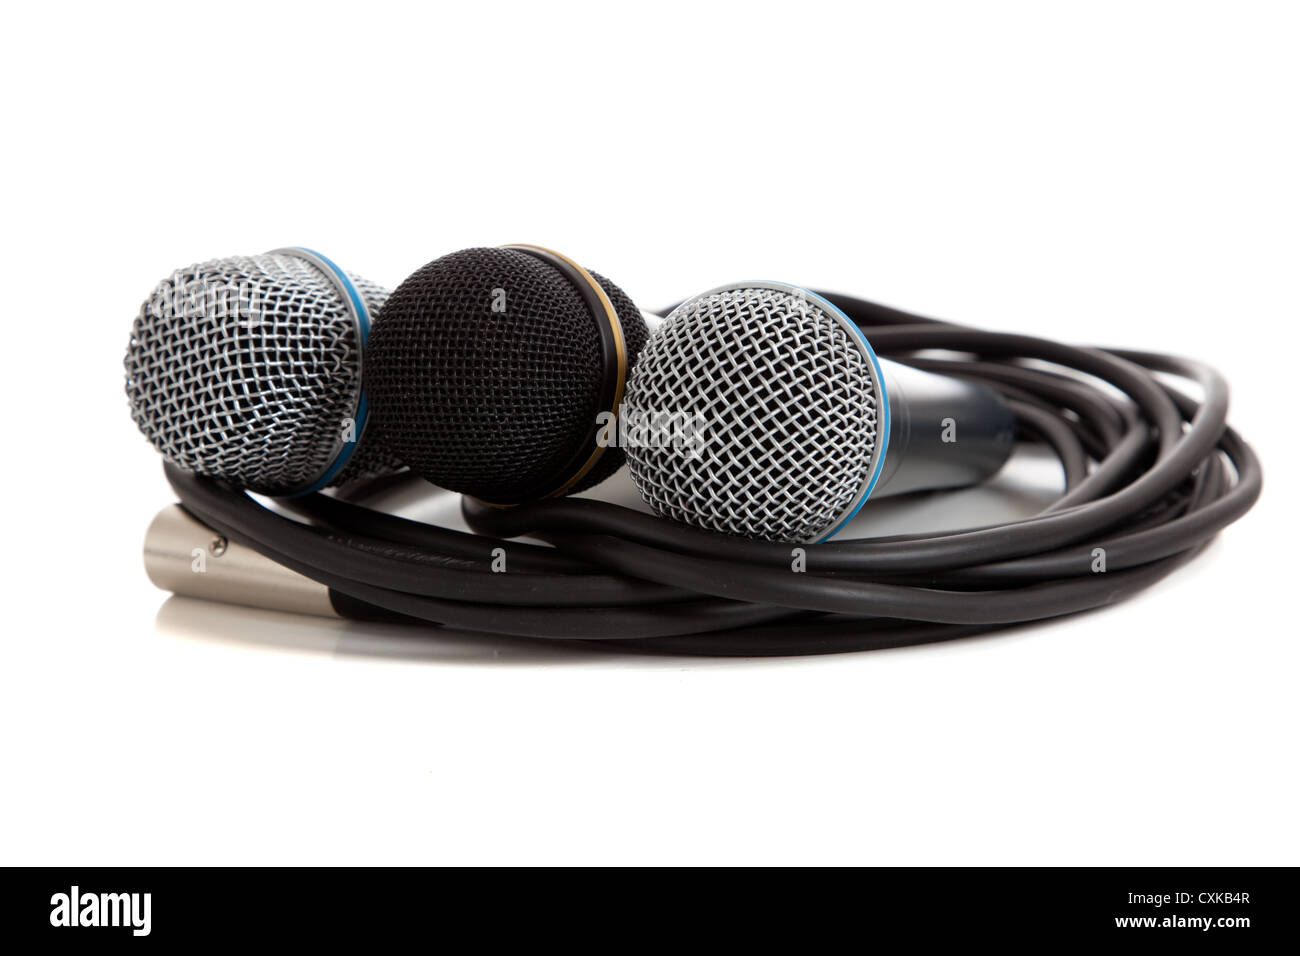 Trio of microphones with cords on a white background - Stock Image